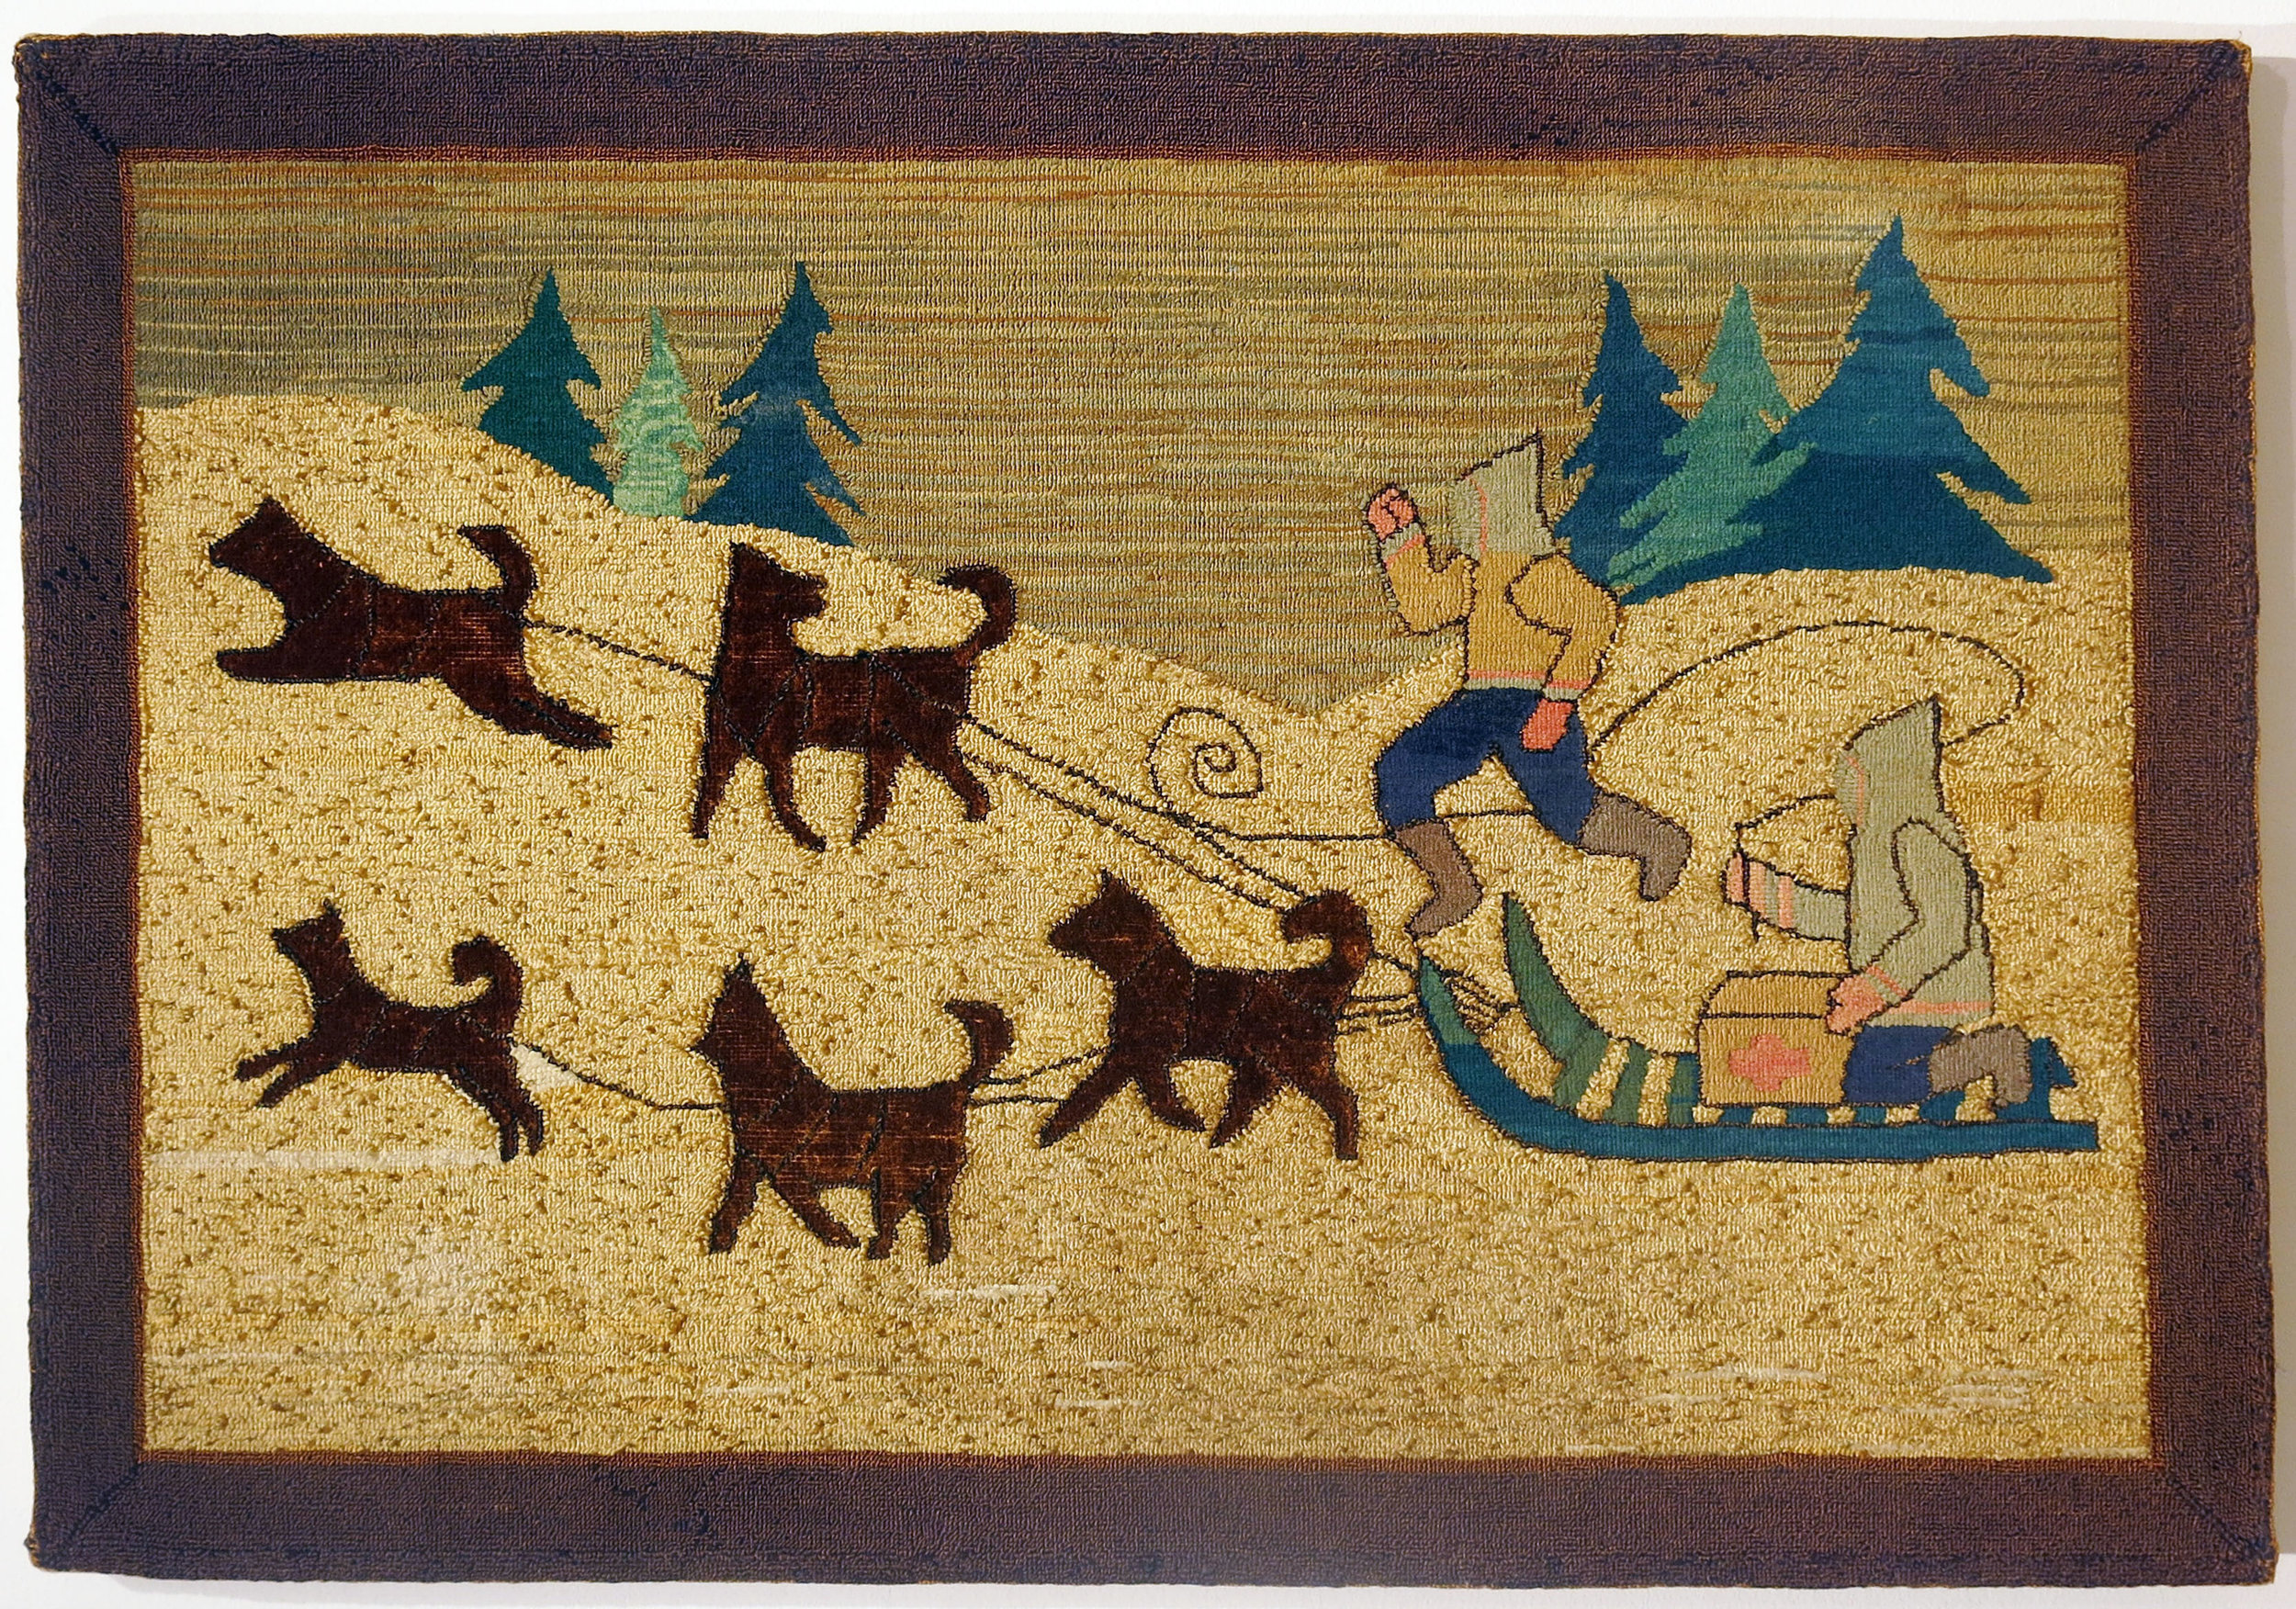 Anonymous, The Grenfell Mission, 5 Dog Red Cross Sled, c. 1918, silk, rayon, burlap; dyed, 26 1/2h x 40w in.